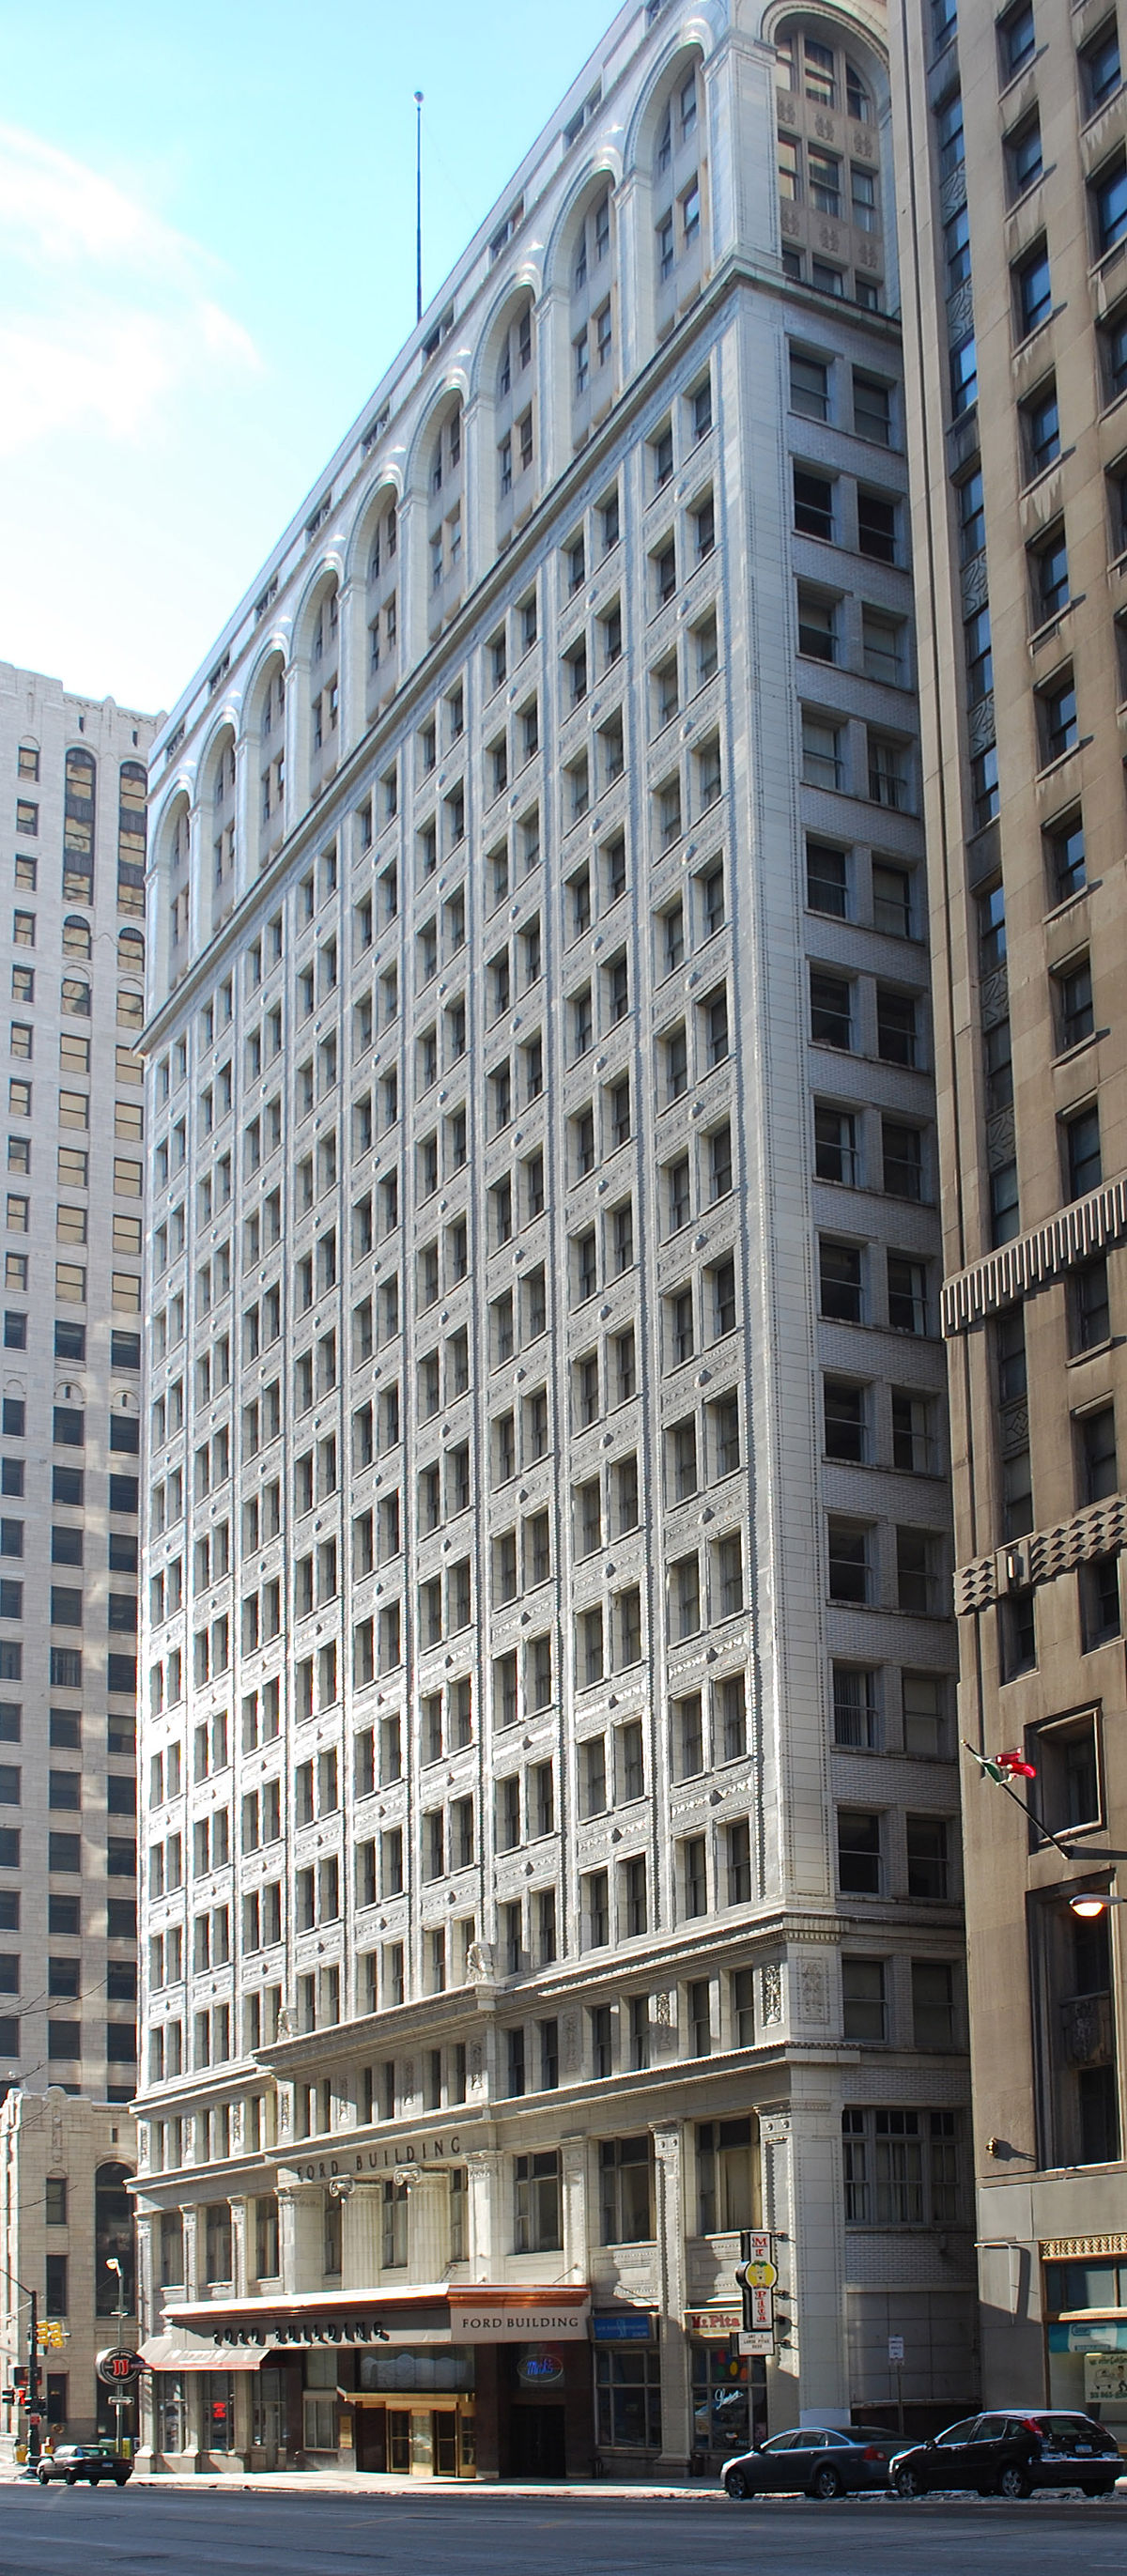 Language In 45 And 47 Stella Street: Ford Building (Detroit)